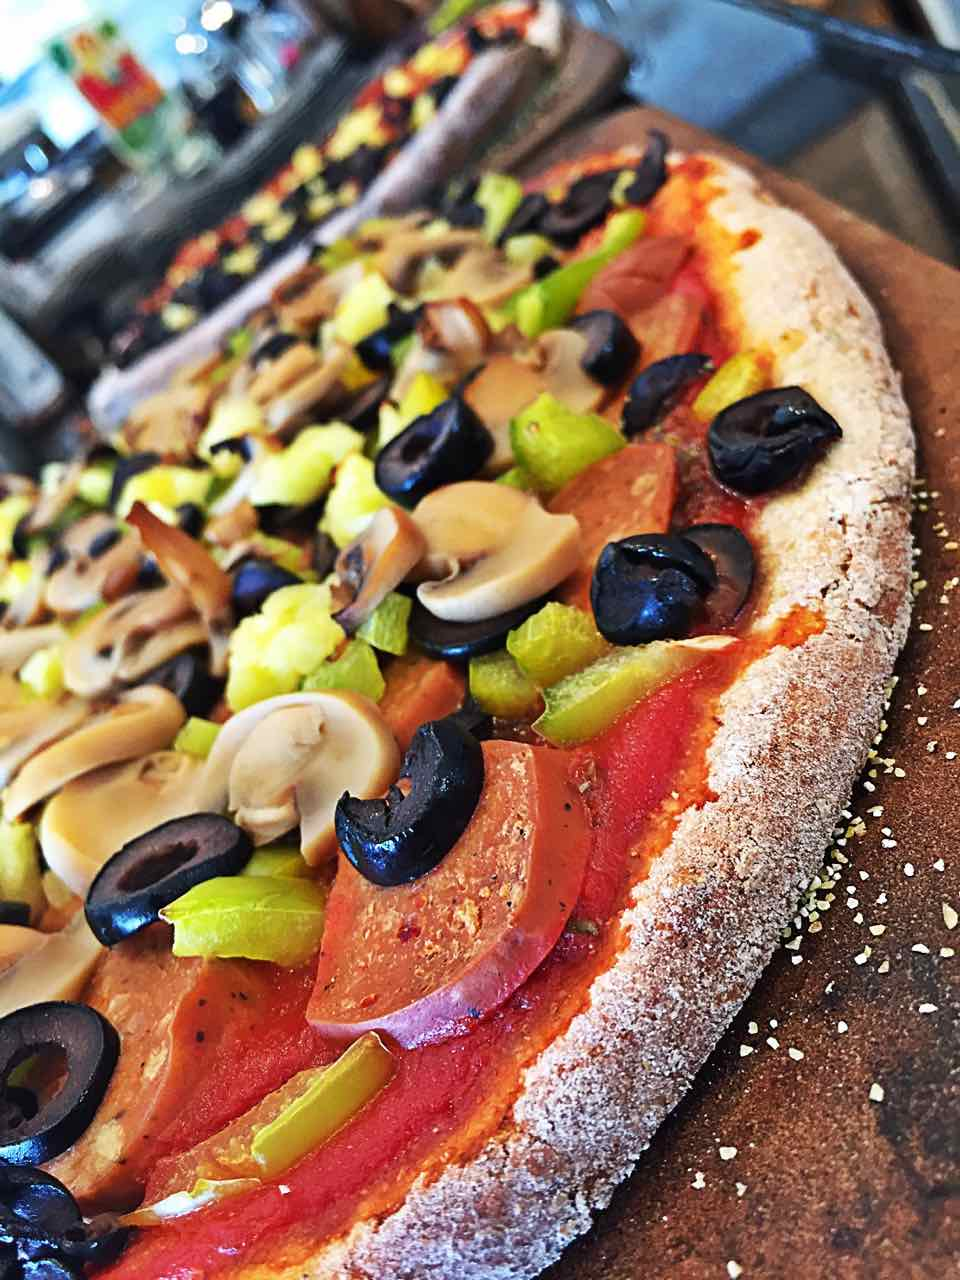 Image of vegan pizza, with focus on the crust. Pizza has vegan sausage, mushrooms, black olives, pineapple, and green peppers with homemade fast no rise whole wheat crispy and delicious pizza crust.